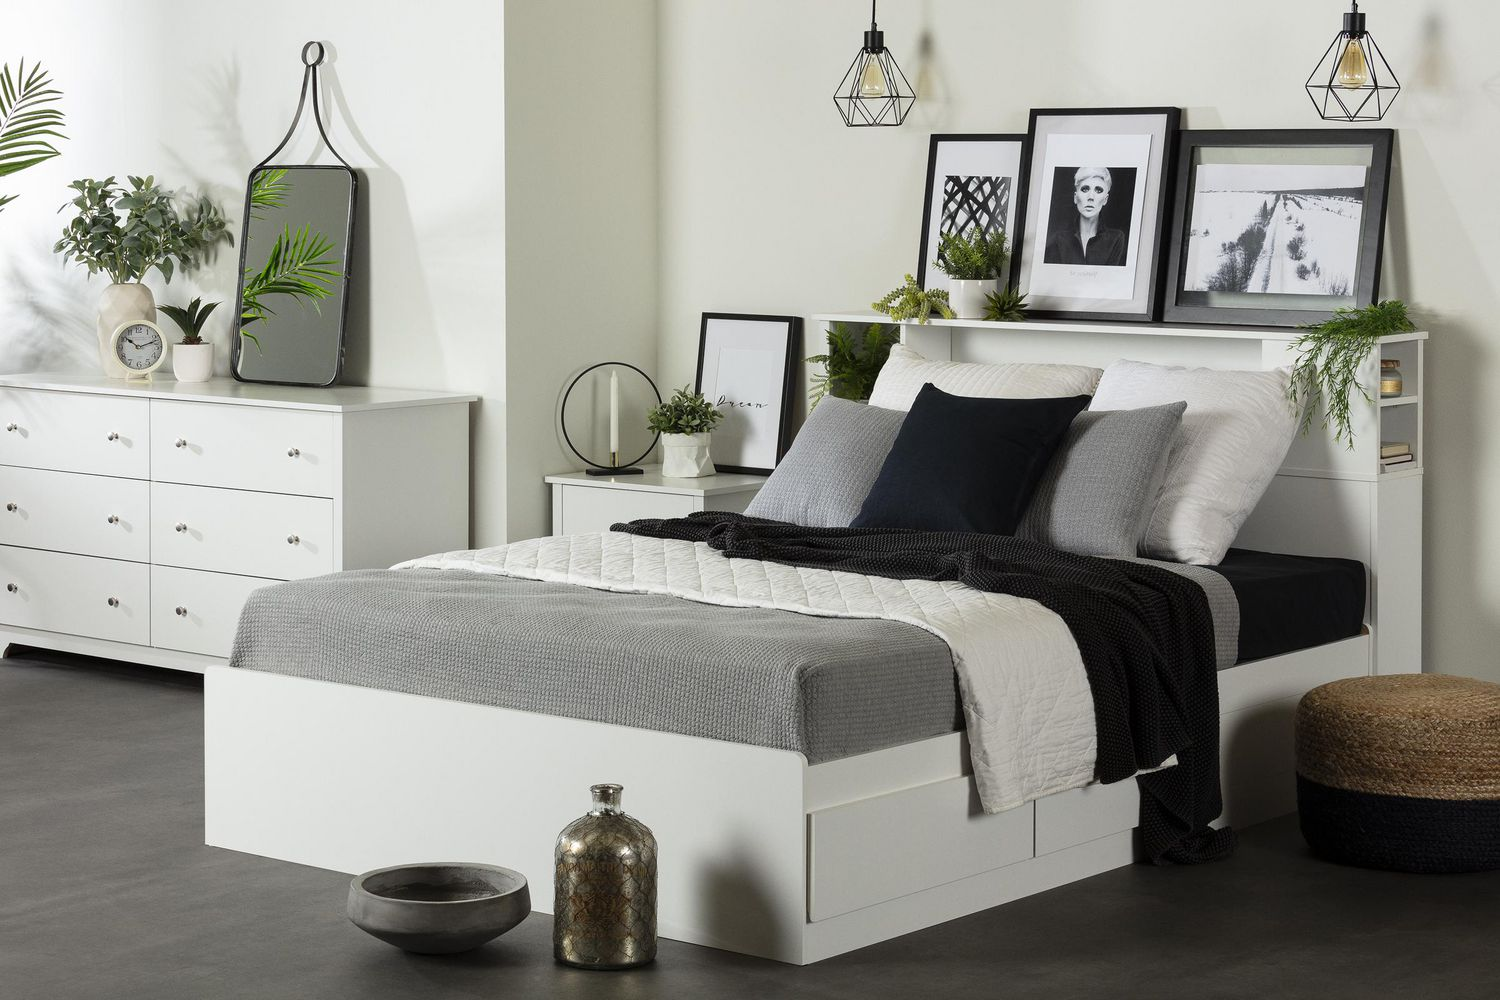 storage south walmart set dark drawers canada brown bedroom ip with vito queen en shore bed white